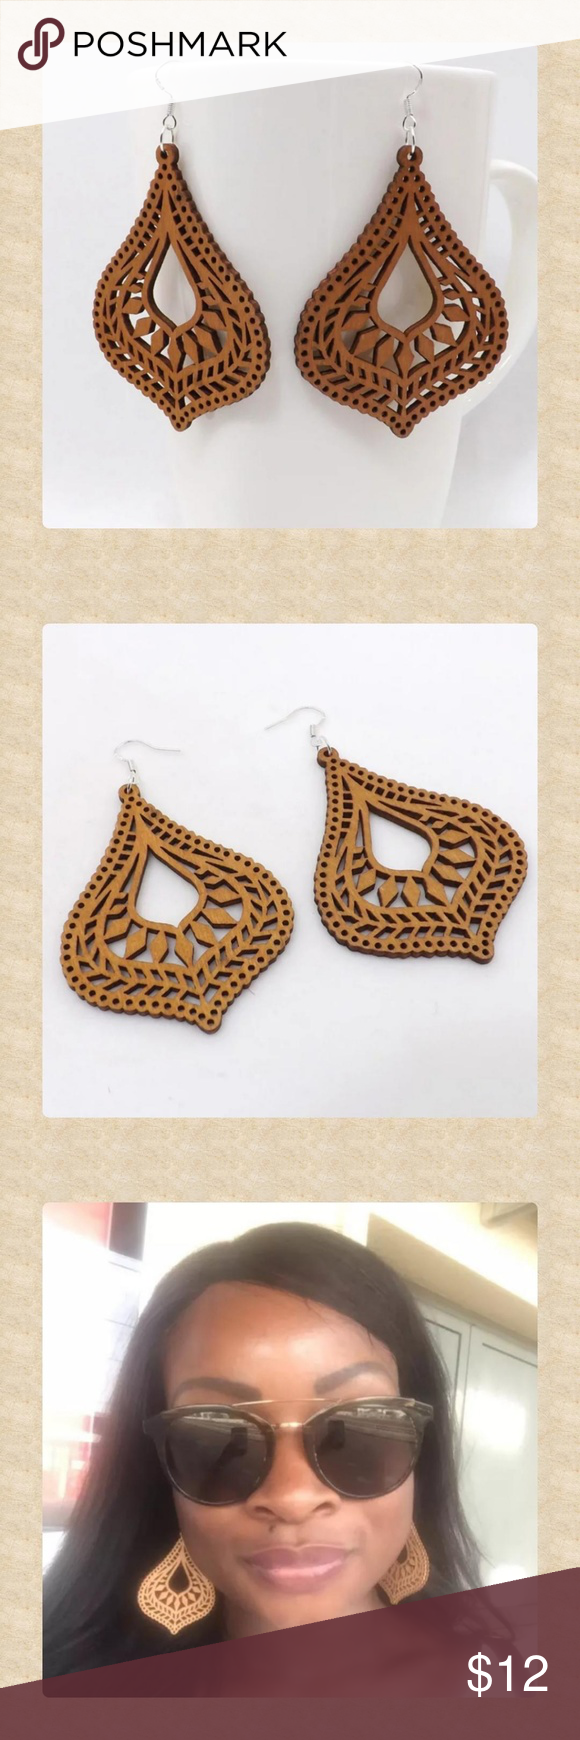 Wooden Cut-out Boho Dangle Earrings! Lovely cut-out, wooden, dangle earrings with lovely intricate boho designs! Great for fall with a chunky sweater!  Measurements posted soon!  boho, global, trendy, statement, natural,  casual, summer, spring, summer, fall, 2018, 2018 Jewelry Earrings